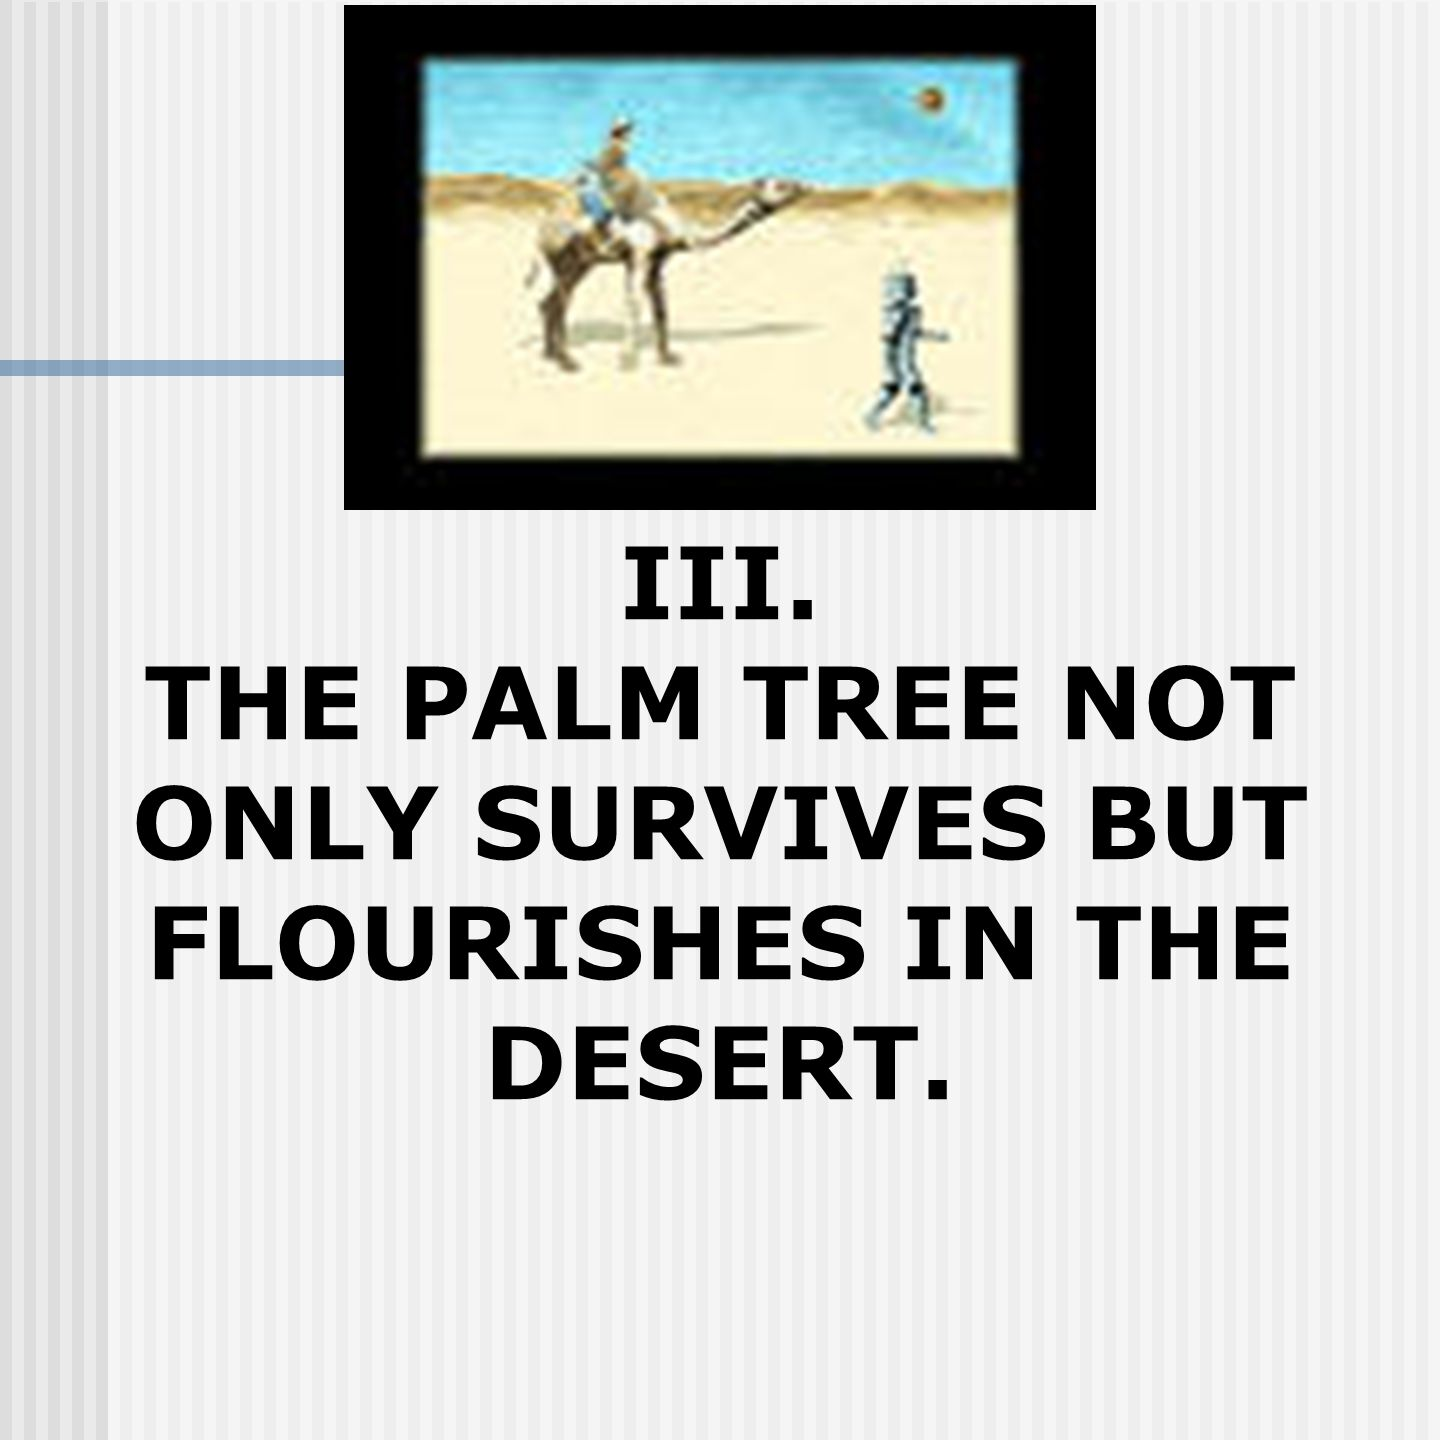 III. THE PALM TREE NOT ONLY SURVIVES BUT FLOURISHES IN THE DESERT.